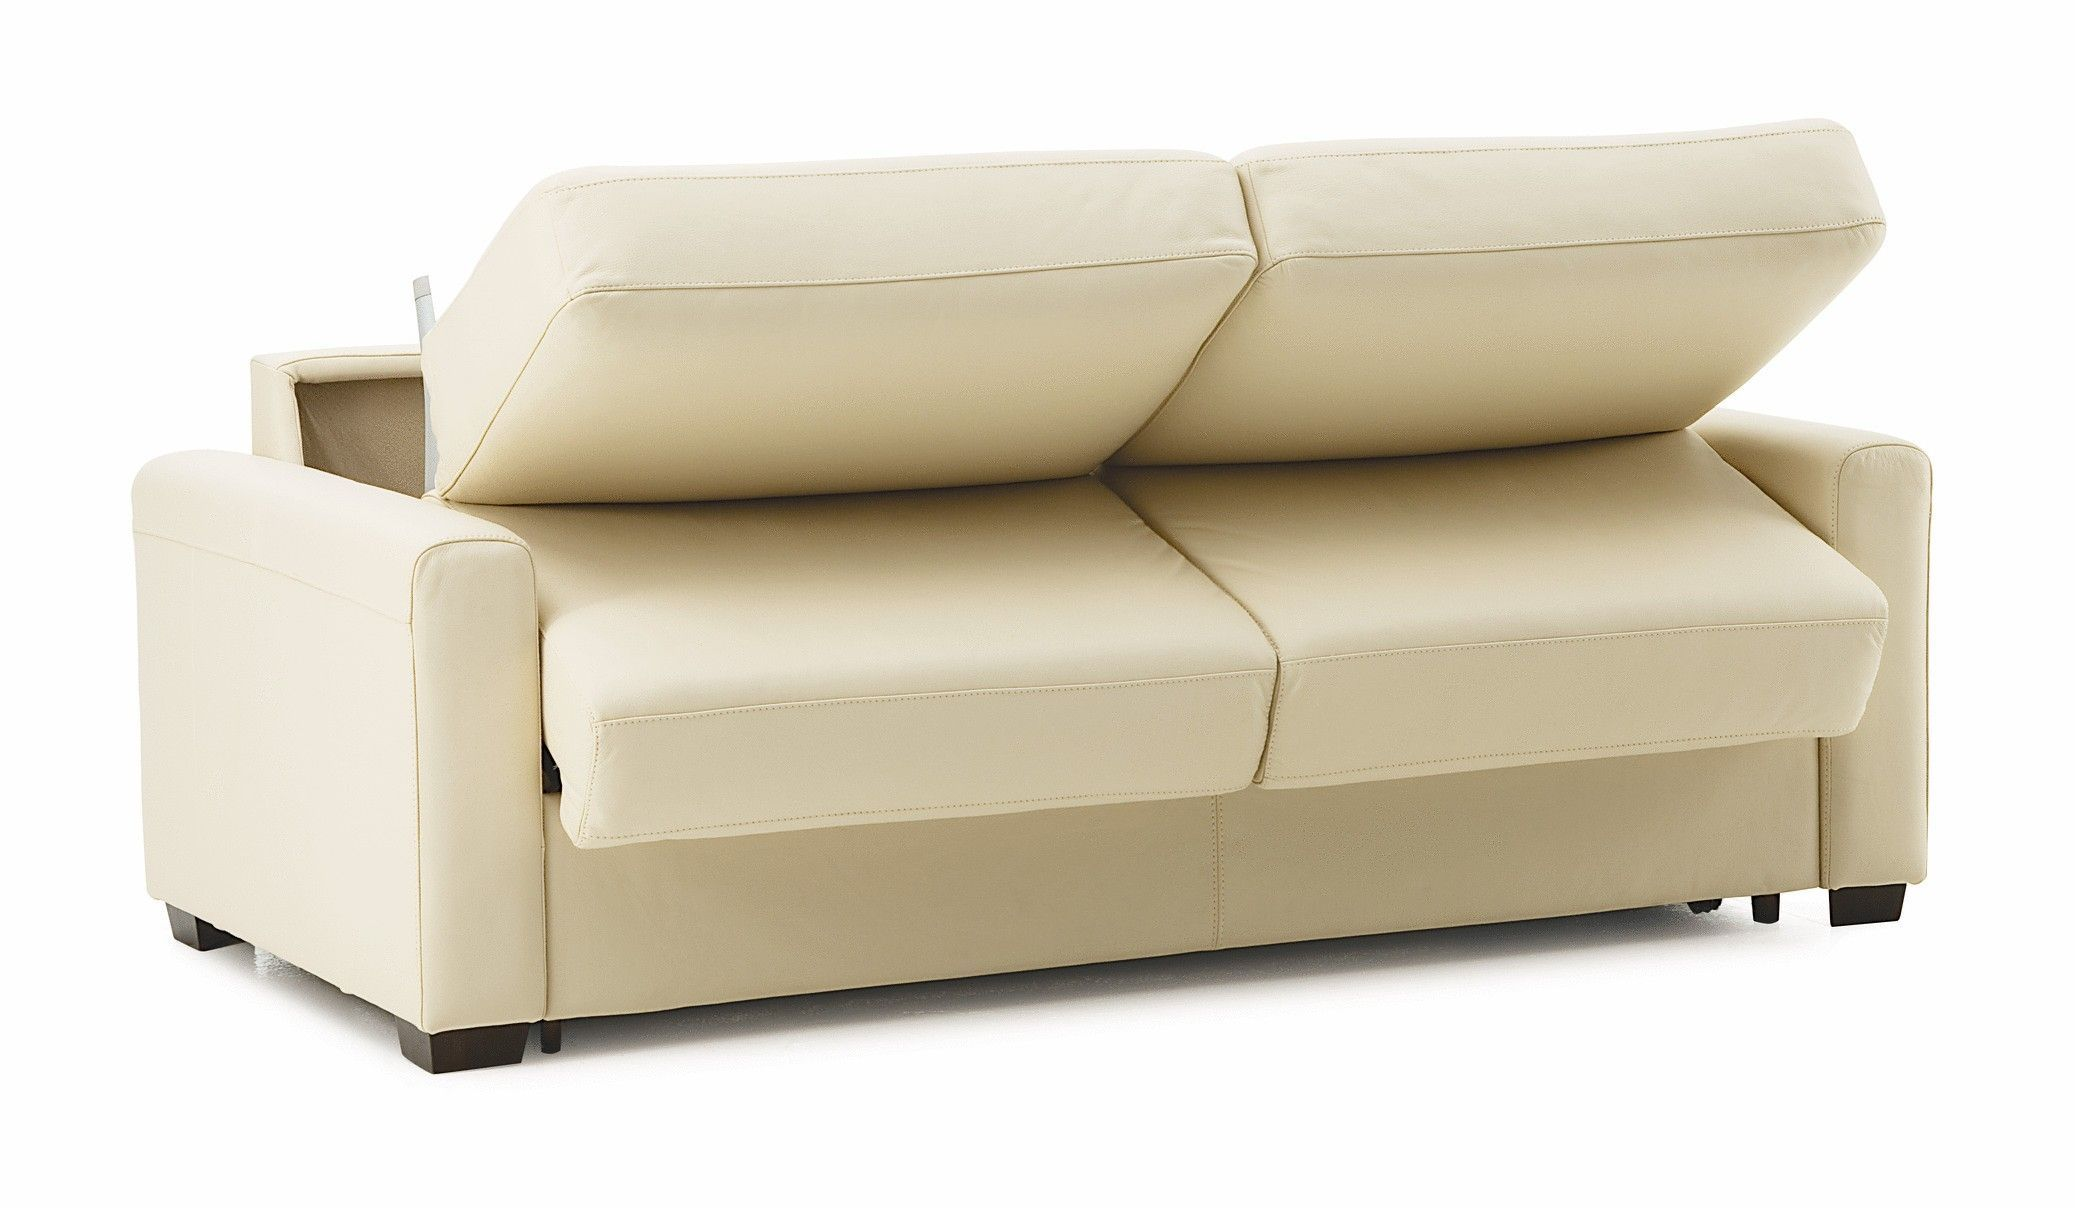 Best Daily Use Sofa Bed Sofabed Best Sleeper Sofa Sleeper Sofa Comfortable Sofa Bed Uk